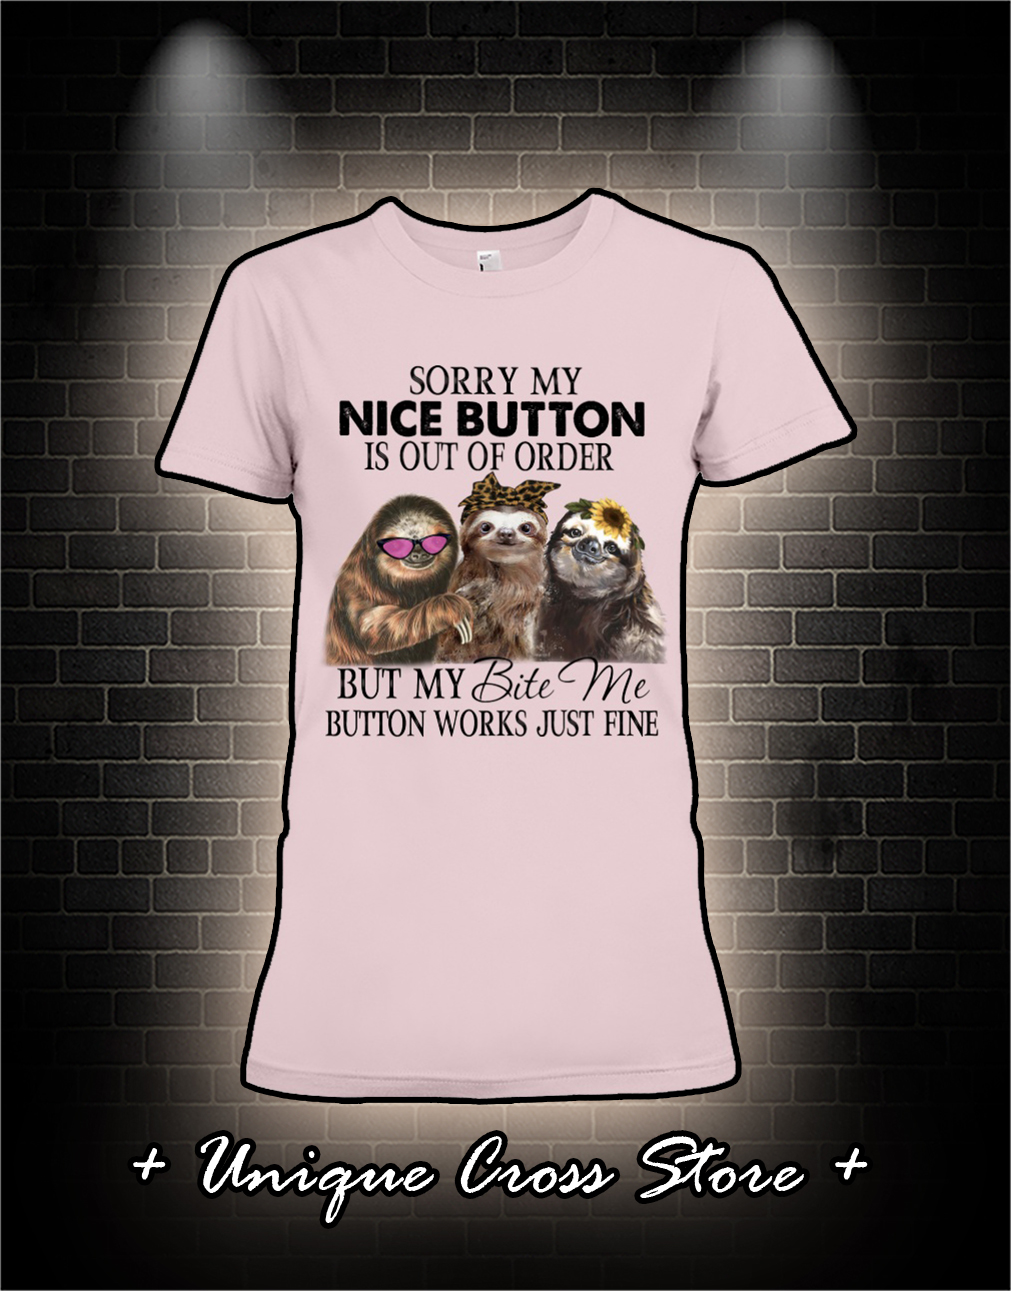 Sloth Sorry my nice button is out of order but my bite me button works just fine woman shirt